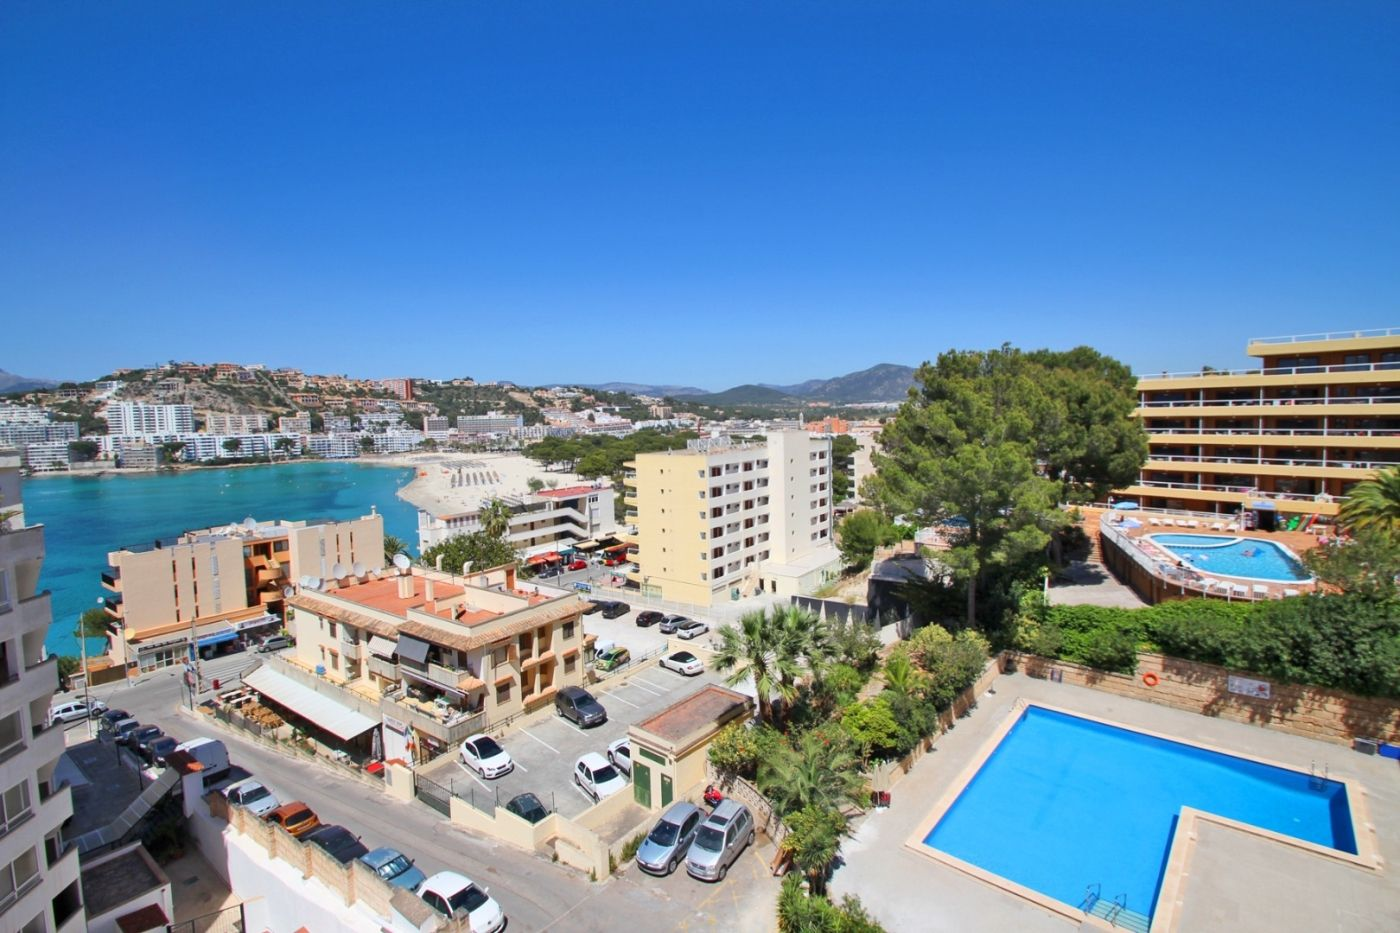 Location Appartement à Santa Ponça. Piso amueblado con ascensor, aire acondicionado y vistas al mar